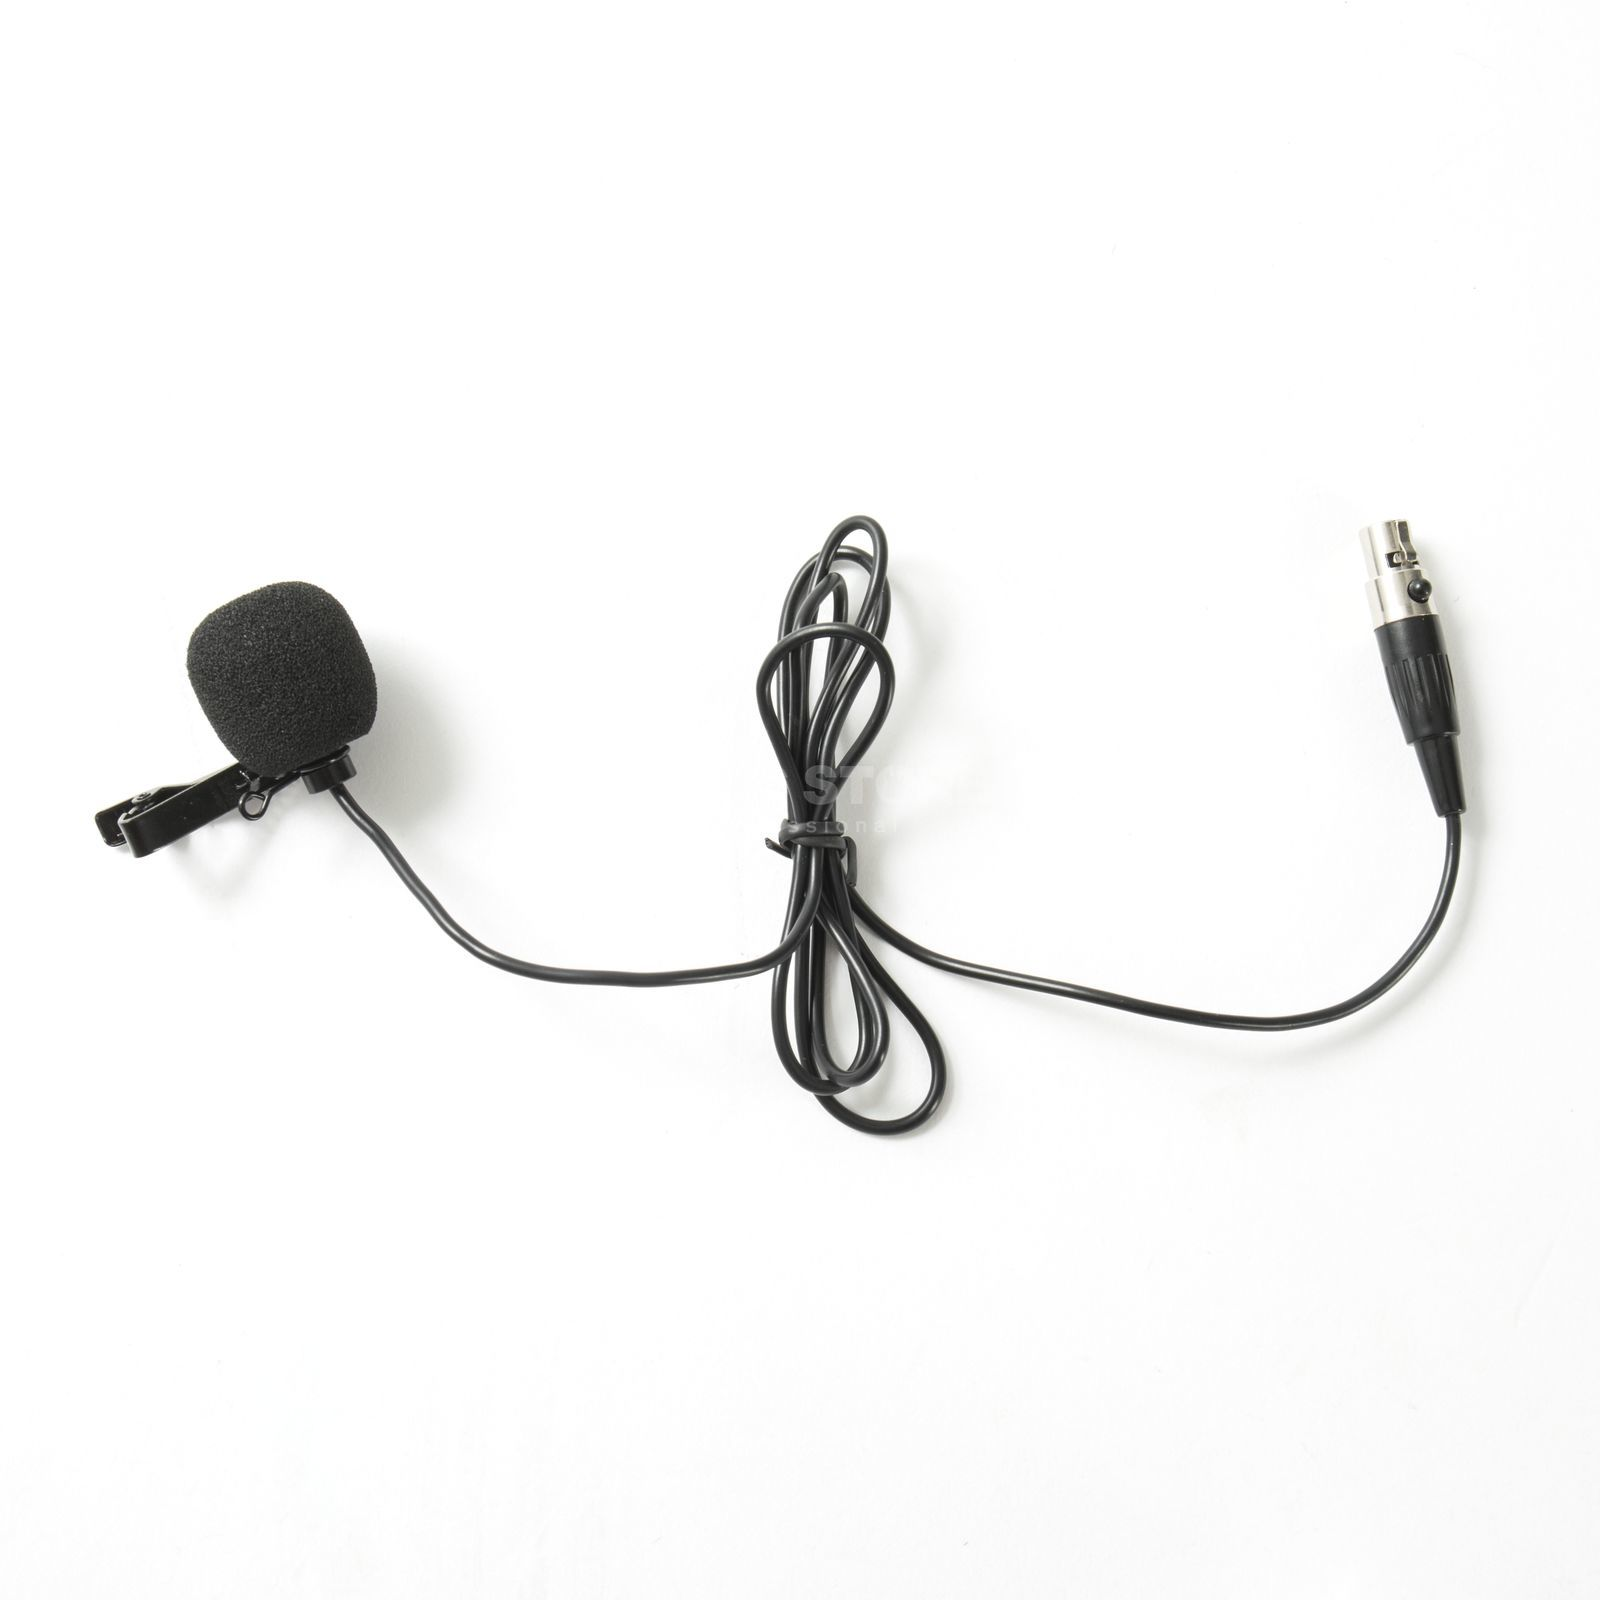 Fame audio MSW Pro LAV Lapel Microphone with mini XLR Imagem do produto